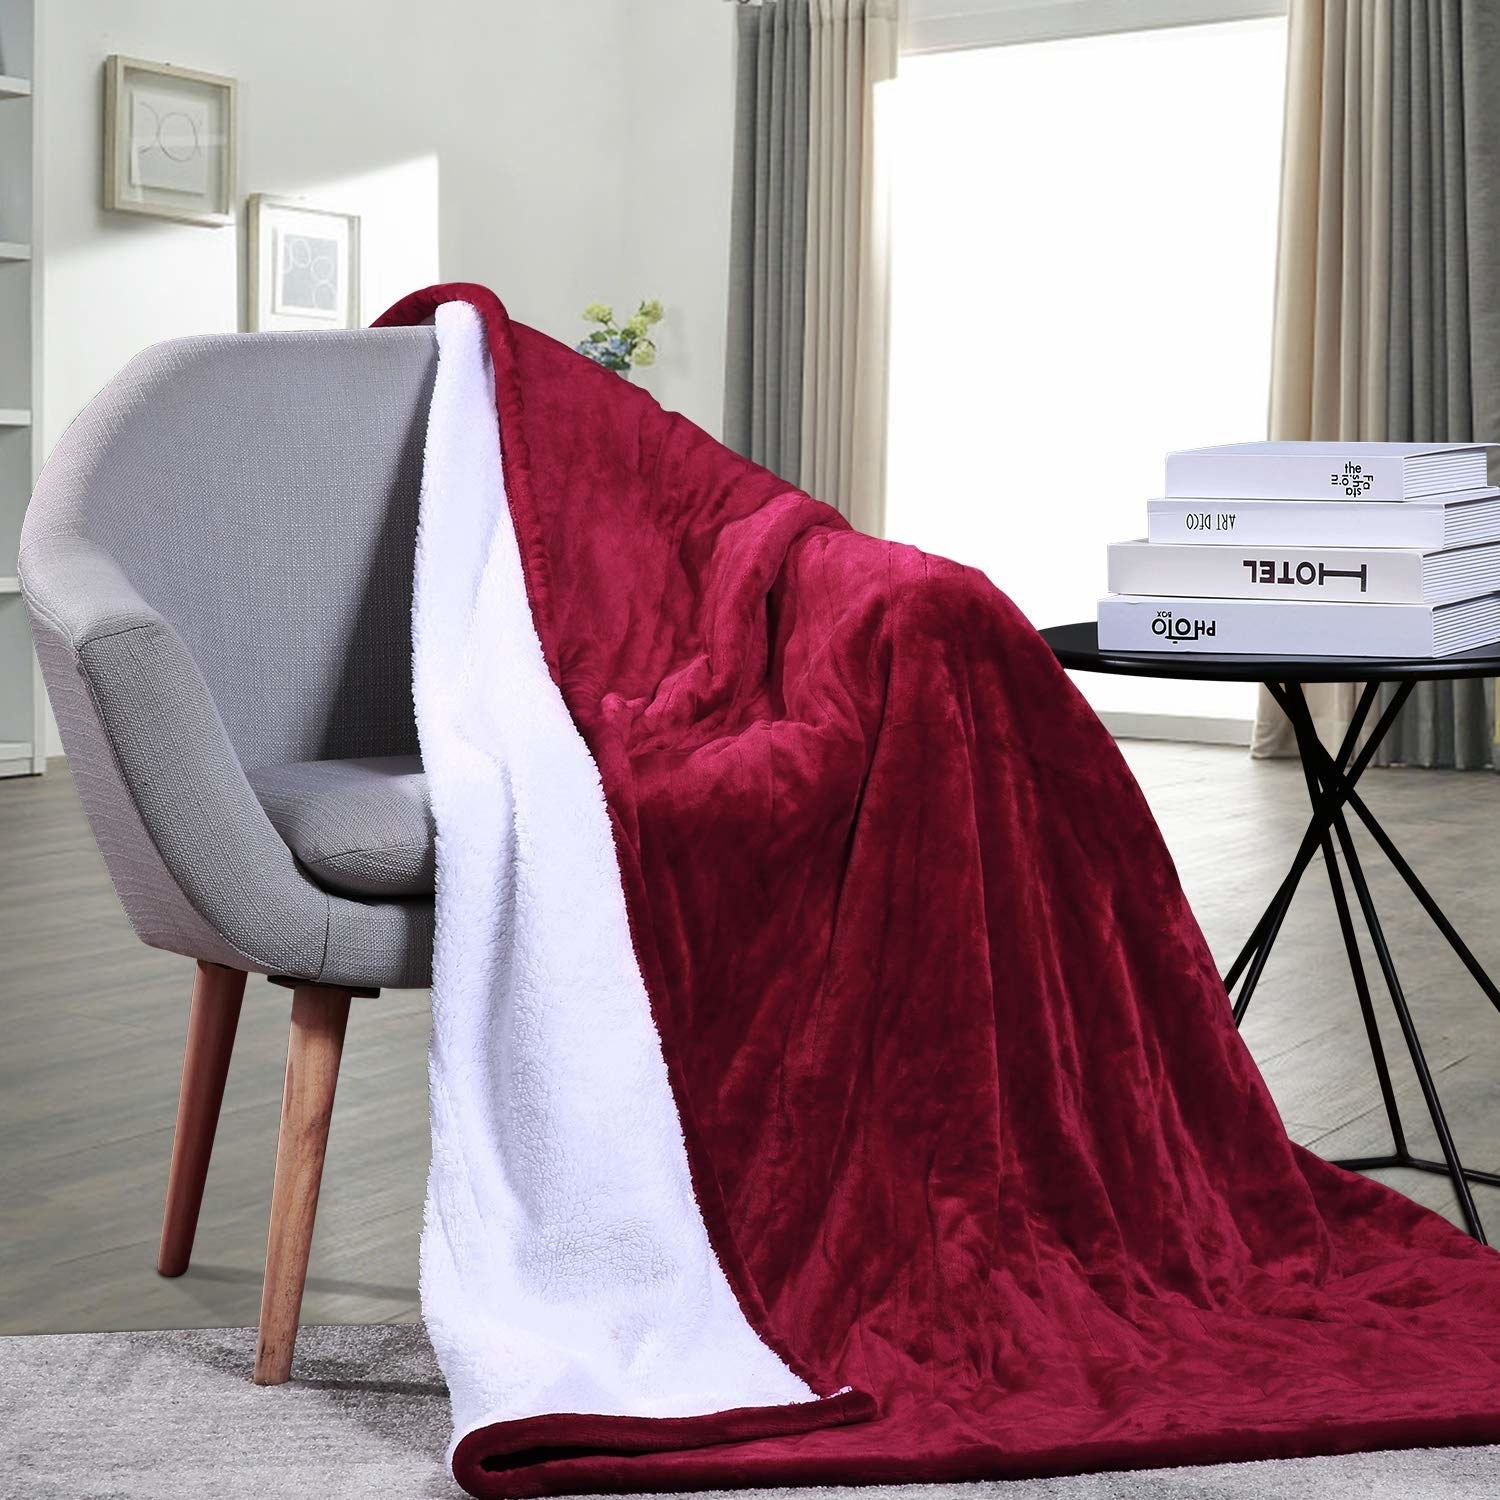 A red blanket draped on a chair